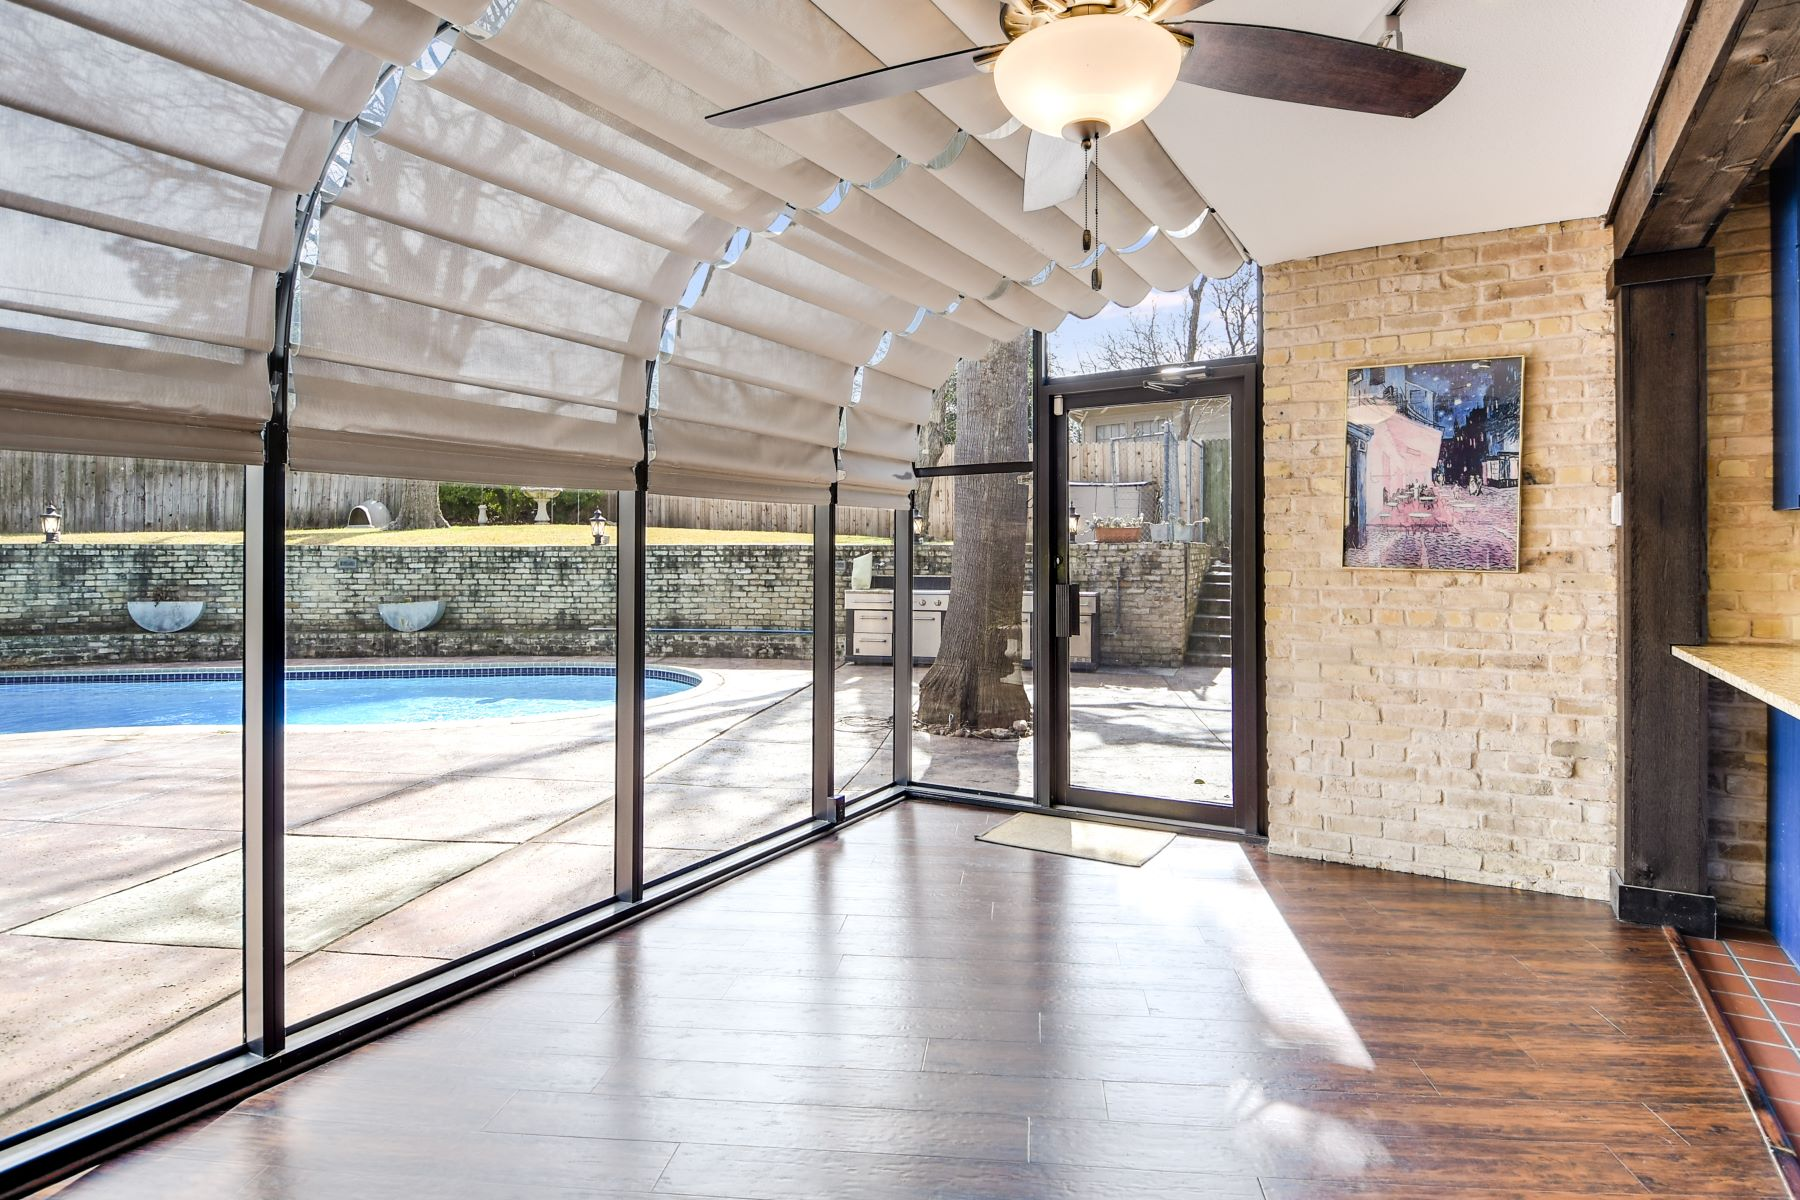 Additional photo for property listing at Mid-Century Home in Bel Meade - 78209 126 East Brandon Drive San Antonio, Texas 78209 United States